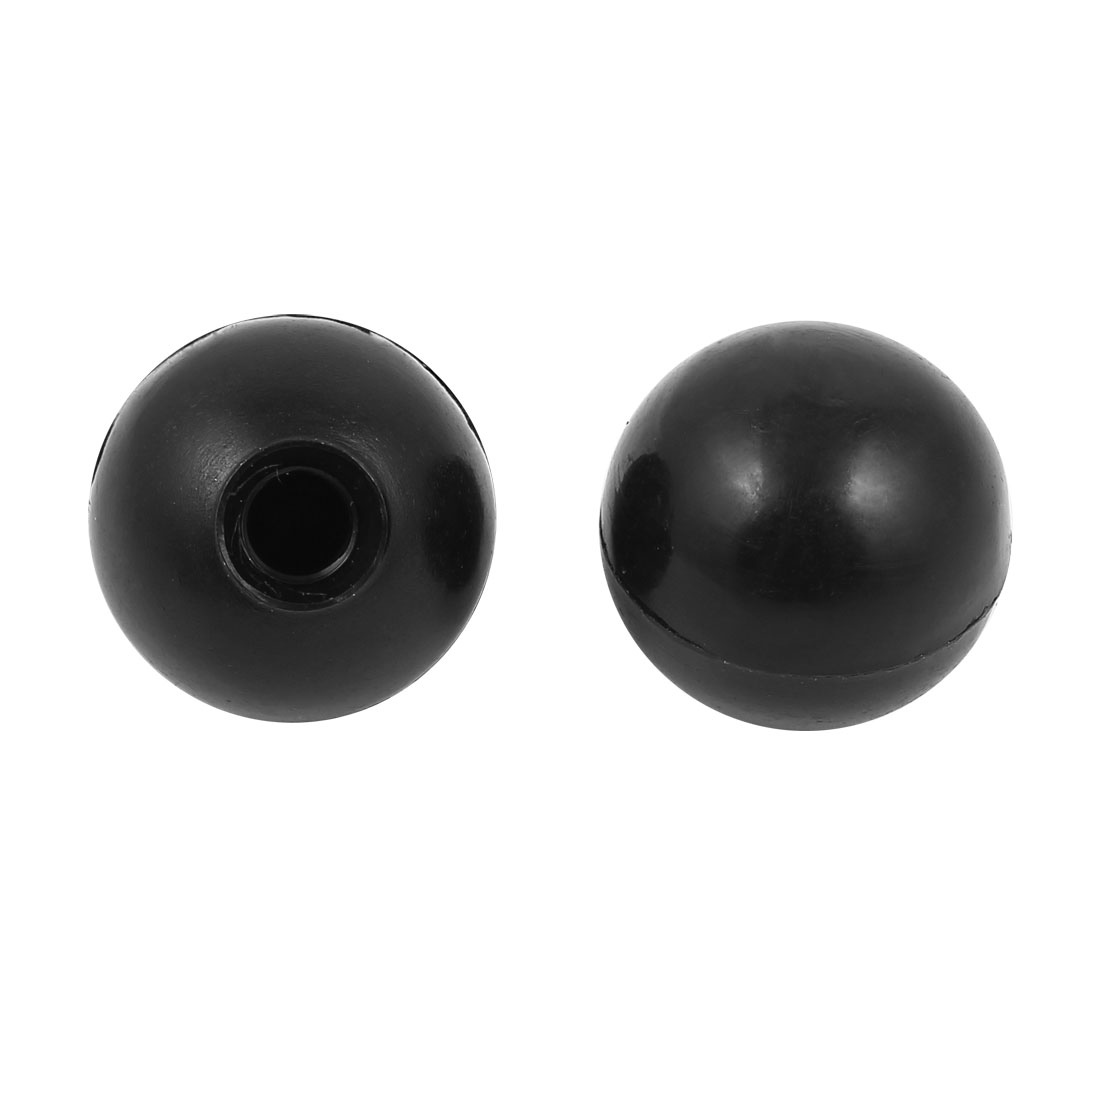 2 Pcs M8 x 30mm Plastic Ball Machine Tool Accessories Console Handle Black